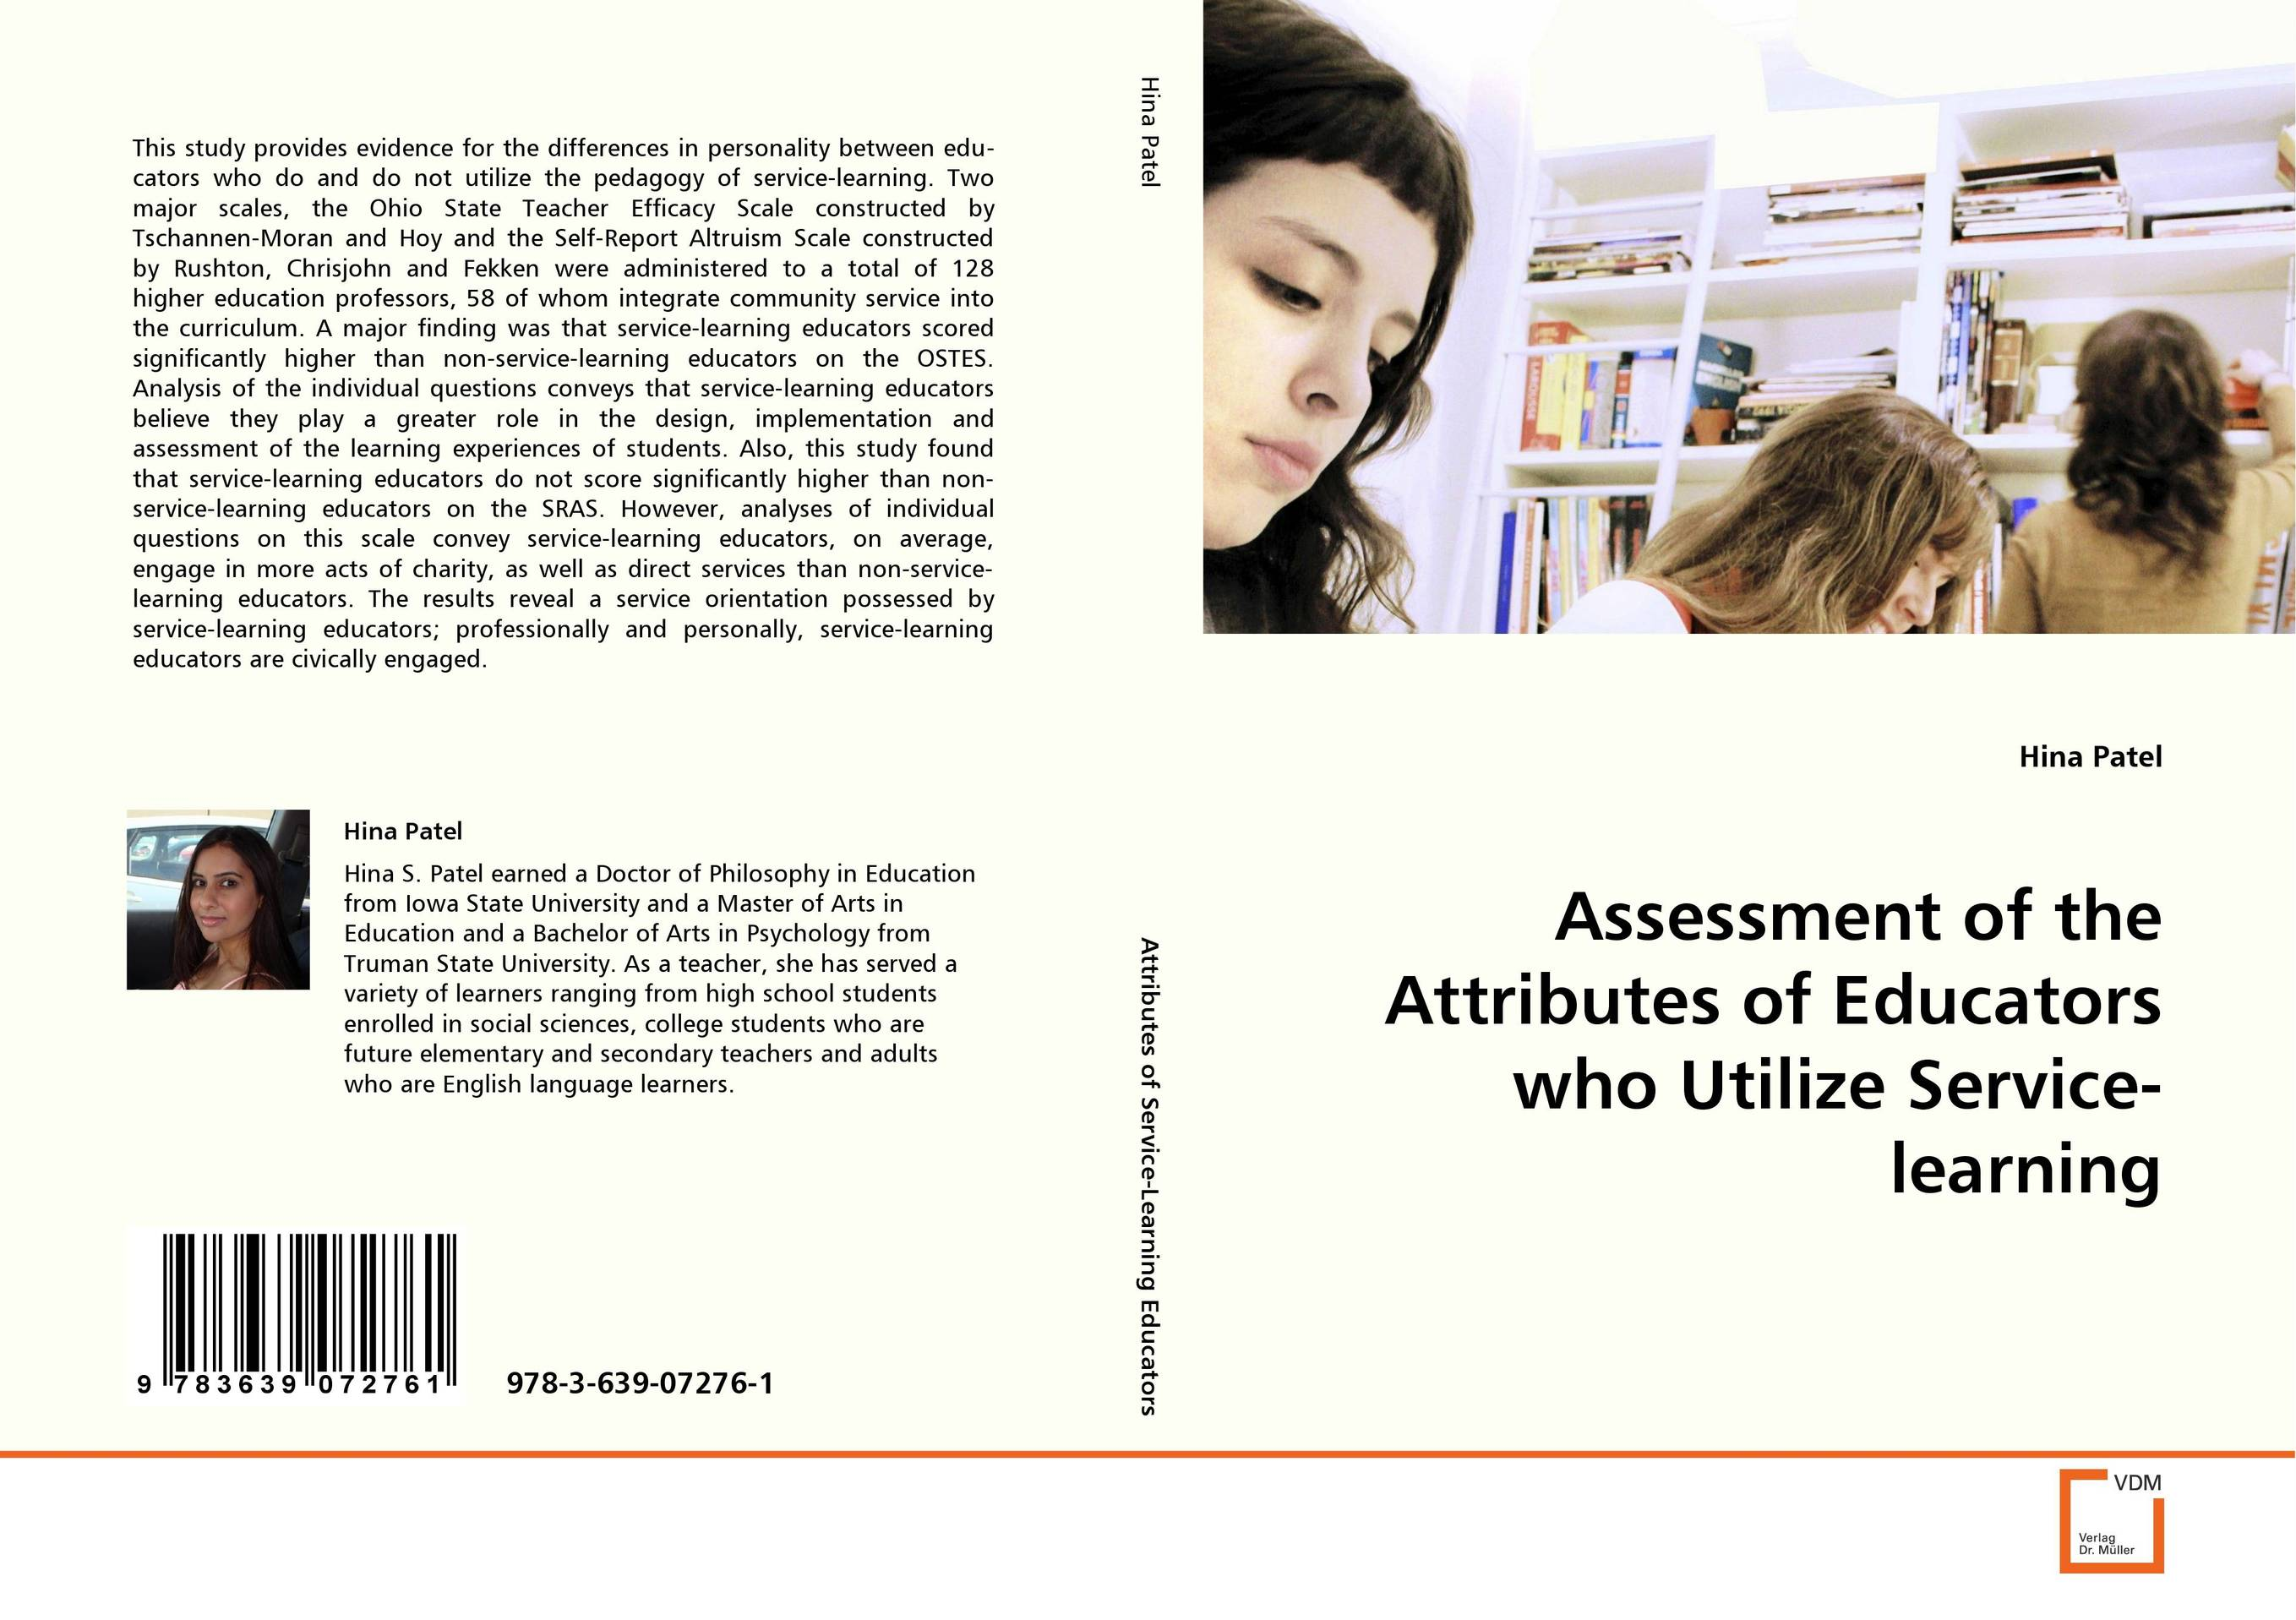 Assessment of the Attributes of Educators who UtilizeService-learning the quality of accreditation standards for distance learning